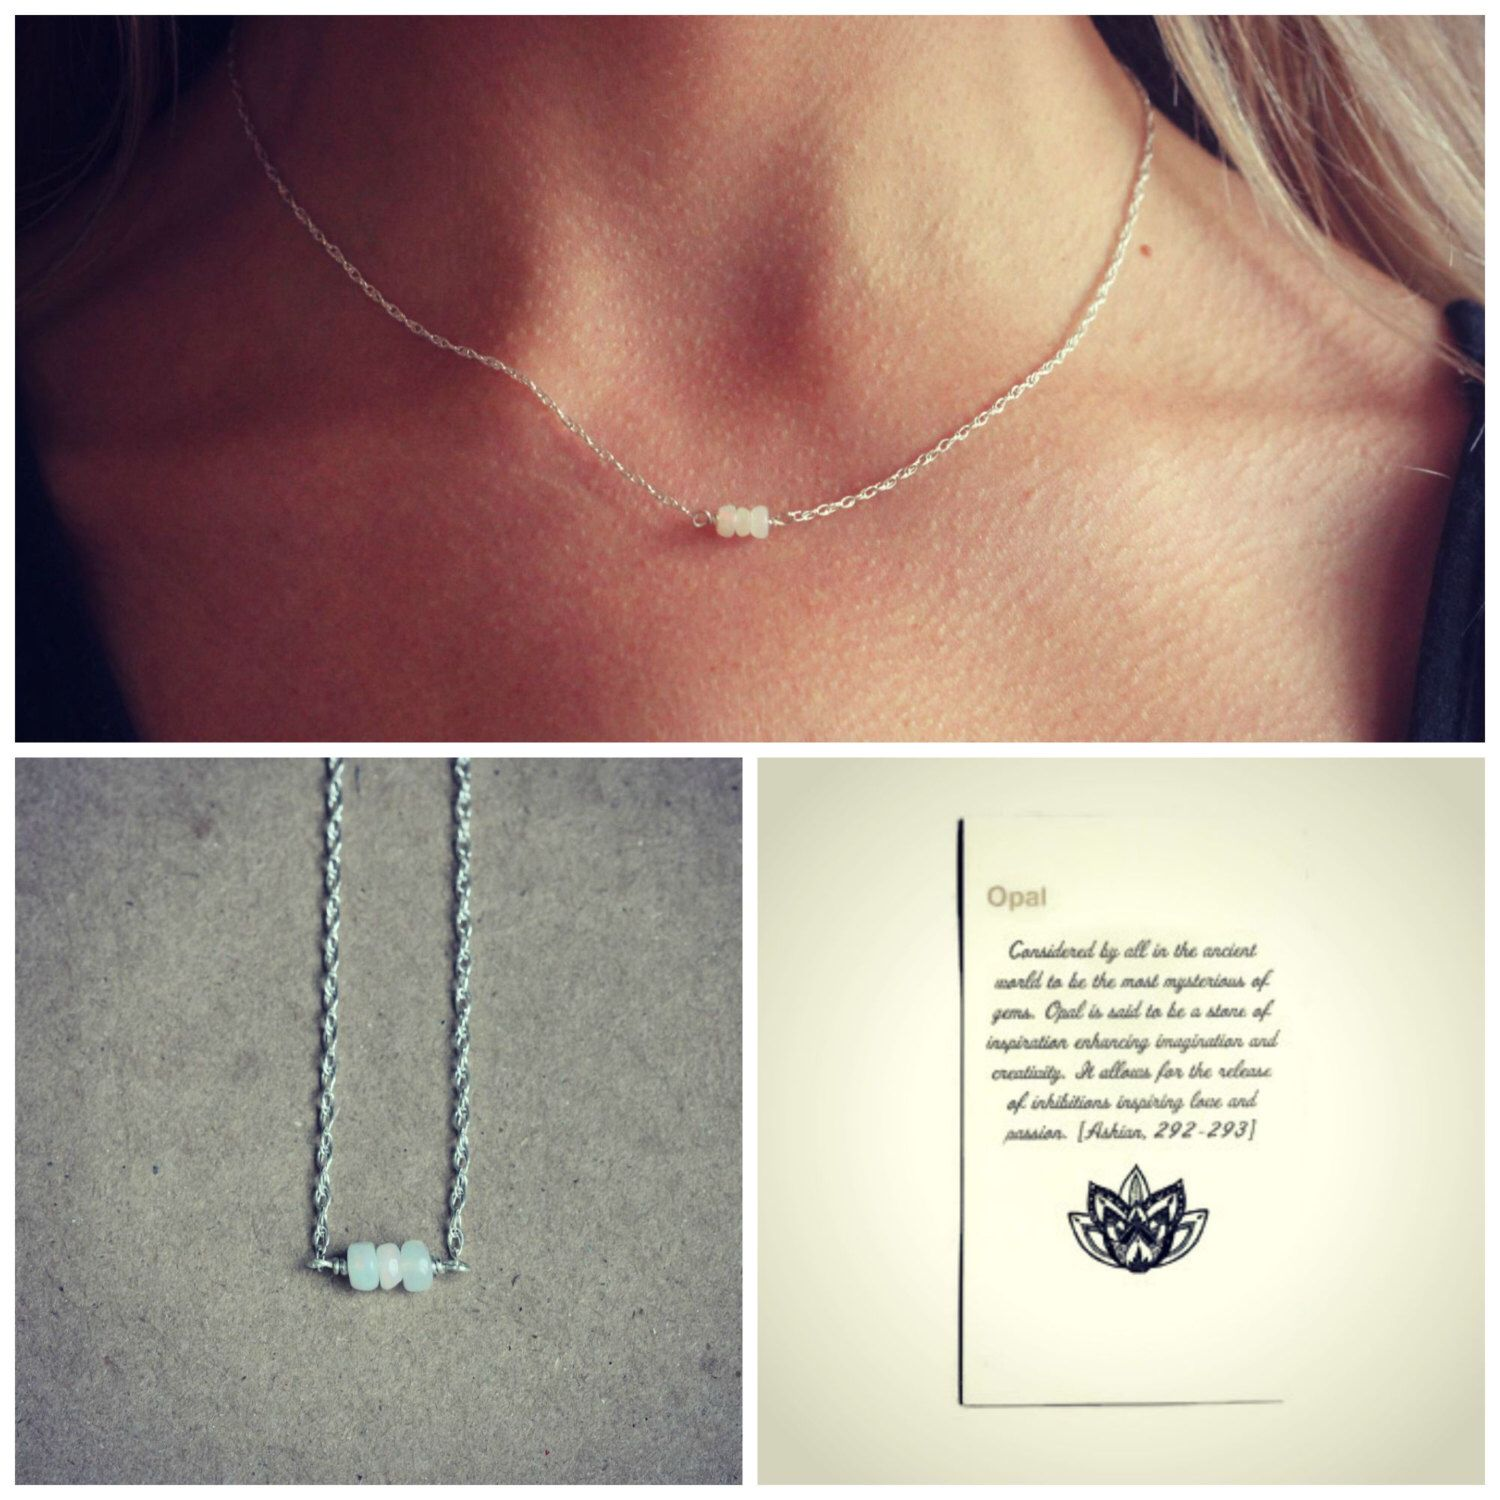 6c43b0676b6e0 Delicate Opal necklace, silver necklace, meaningful jewelry, best ...